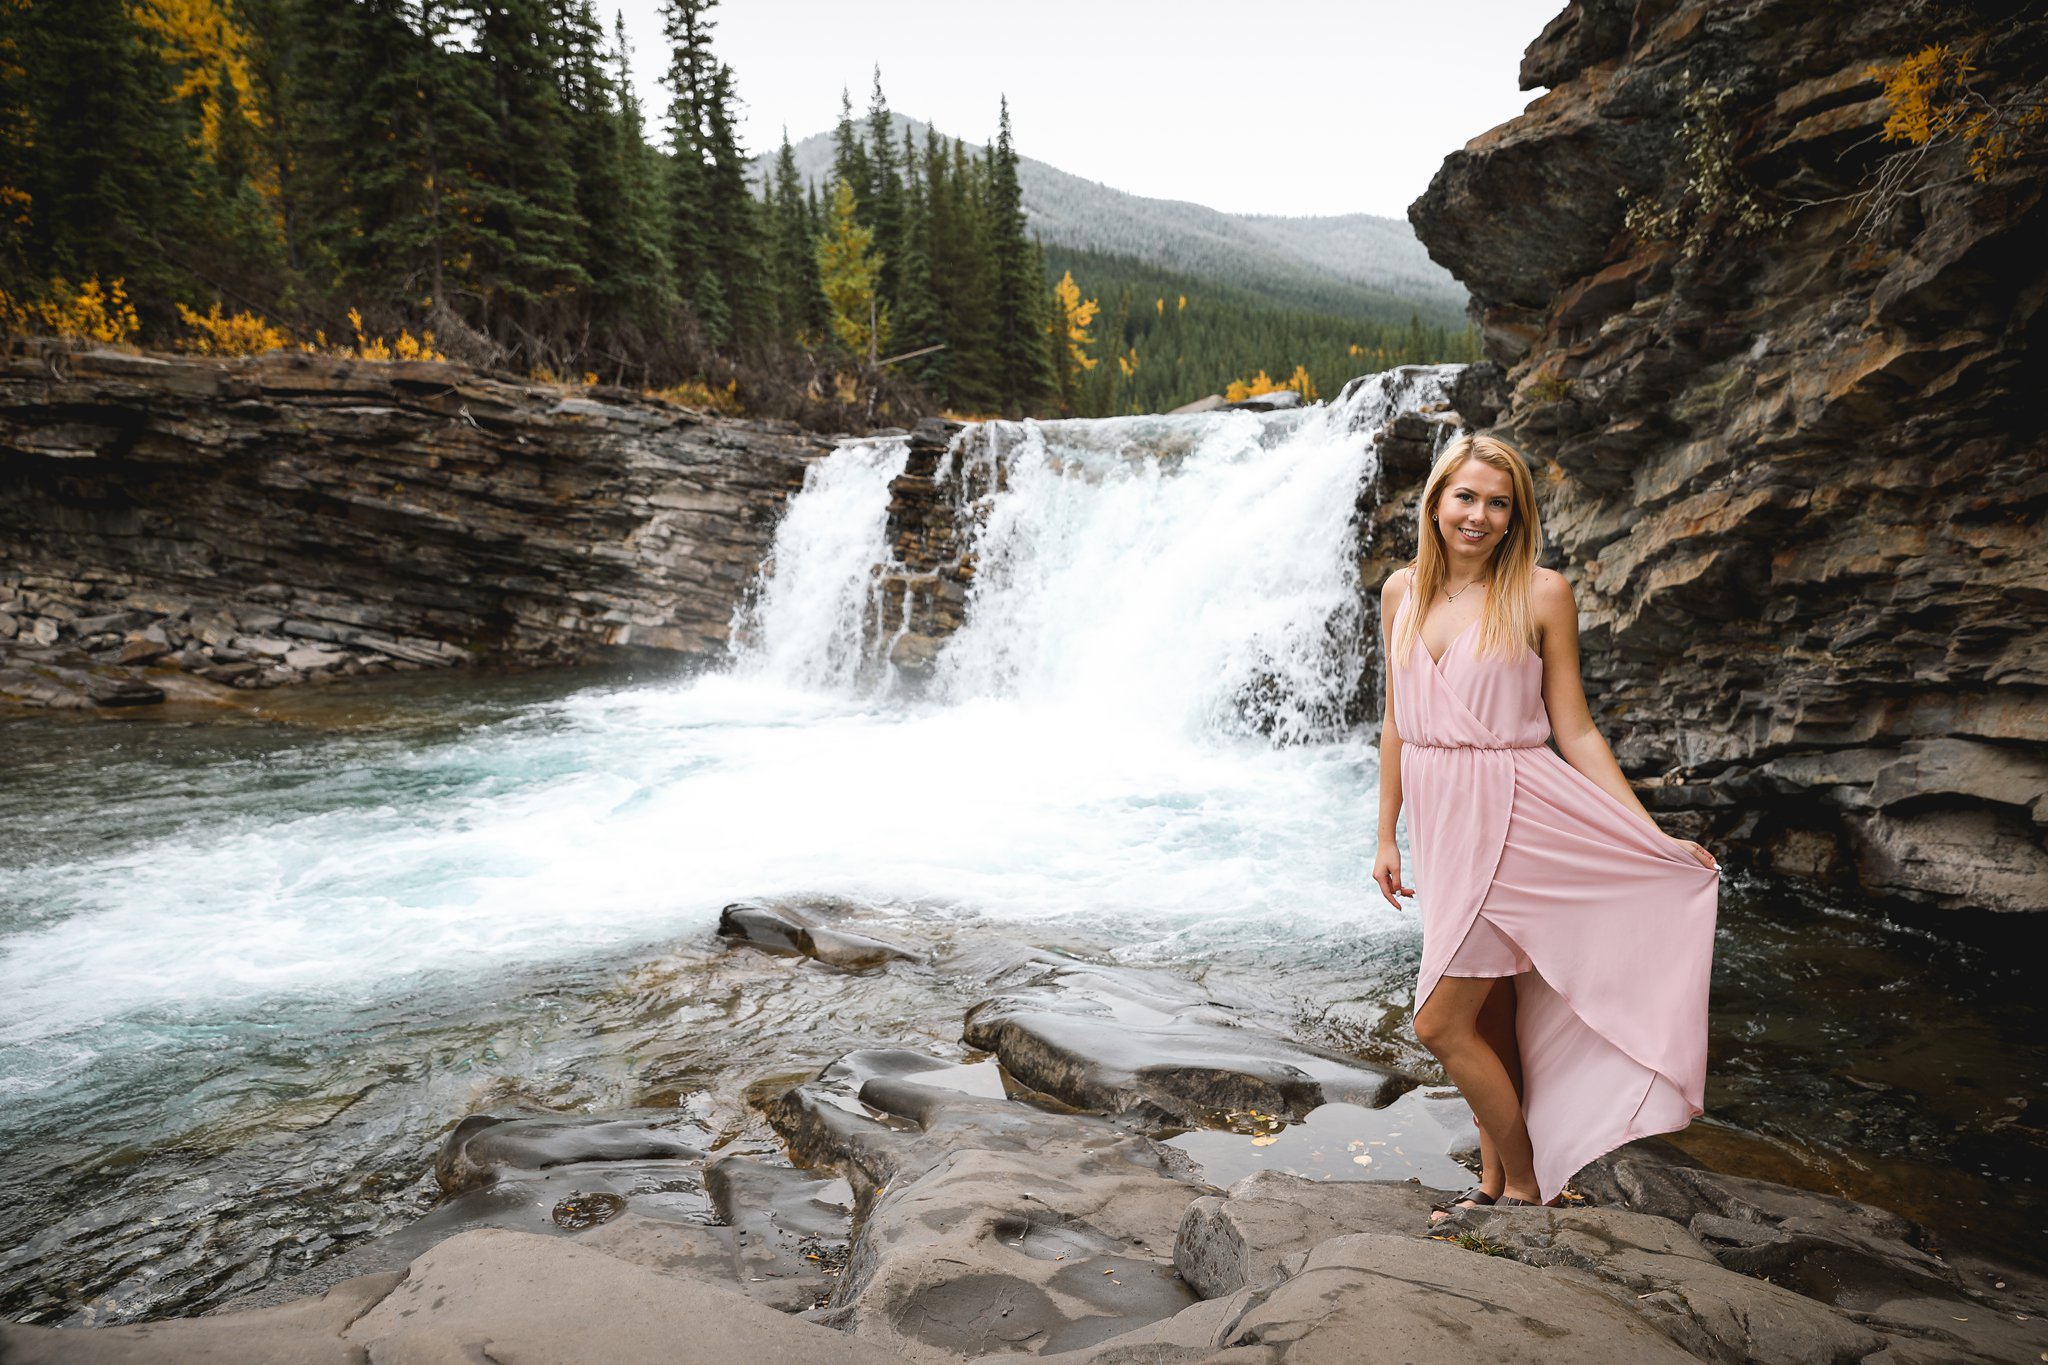 AshleyDaphnePhotography Calgary Photographer Wedding Family Senior Portraits Rocky Mountains Sheep River Falls Autumn Fall_0027.jpg